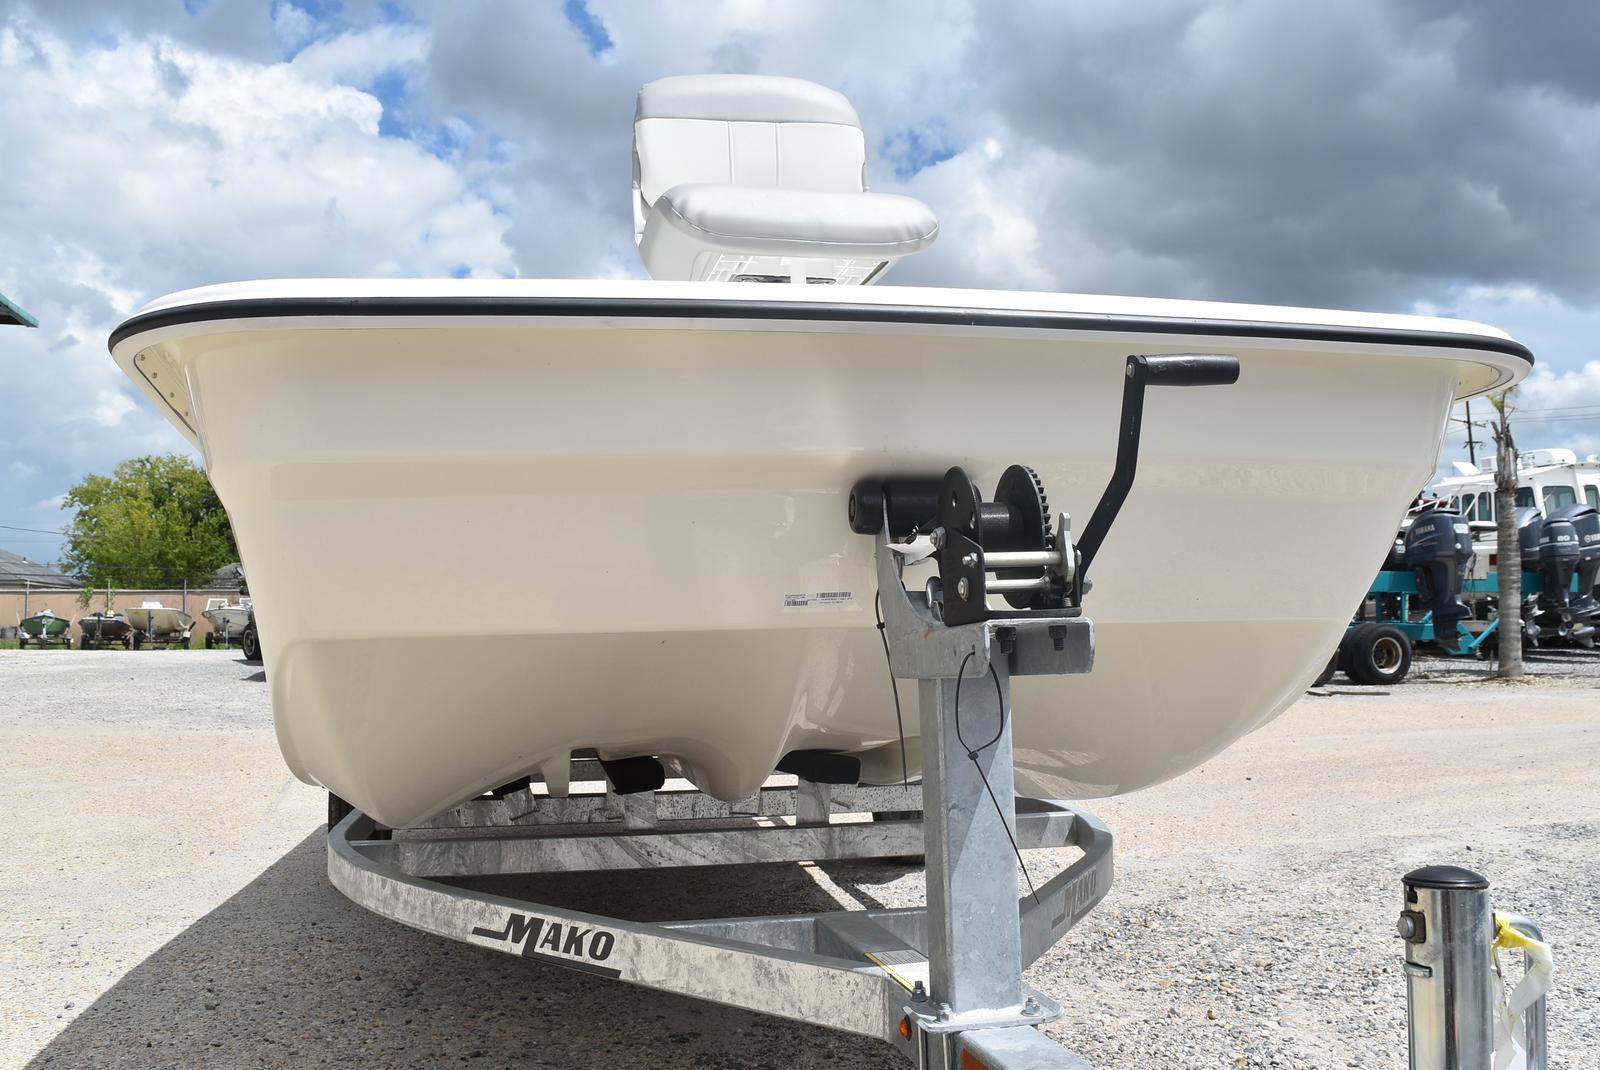 2020 Mako boat for sale, model of the boat is Pro Skiff 17, 75 ELPT & Image # 315 of 702